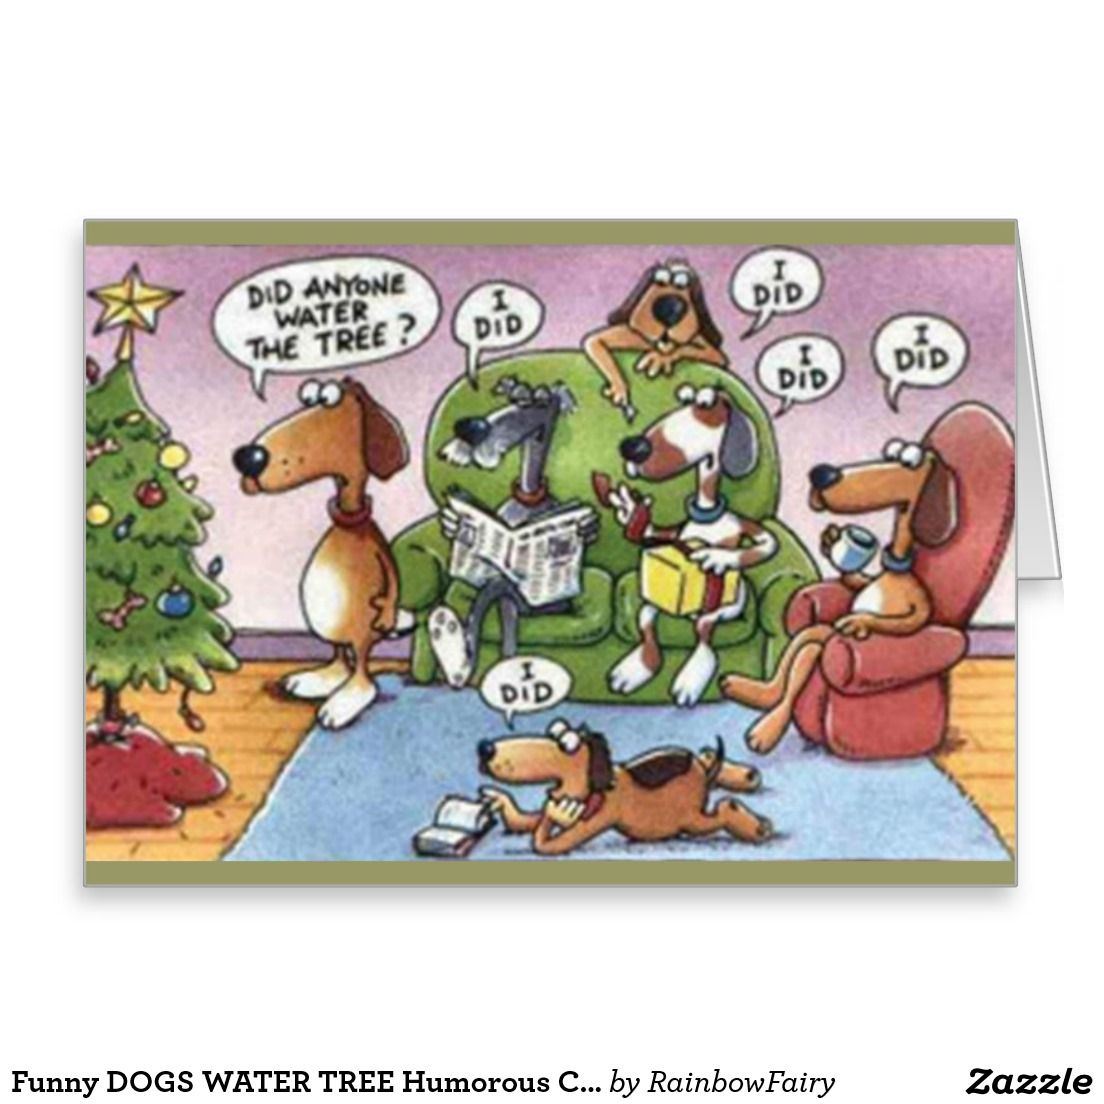 Funny DOGS WATER TREE Humorous Christmas Card. Artwork